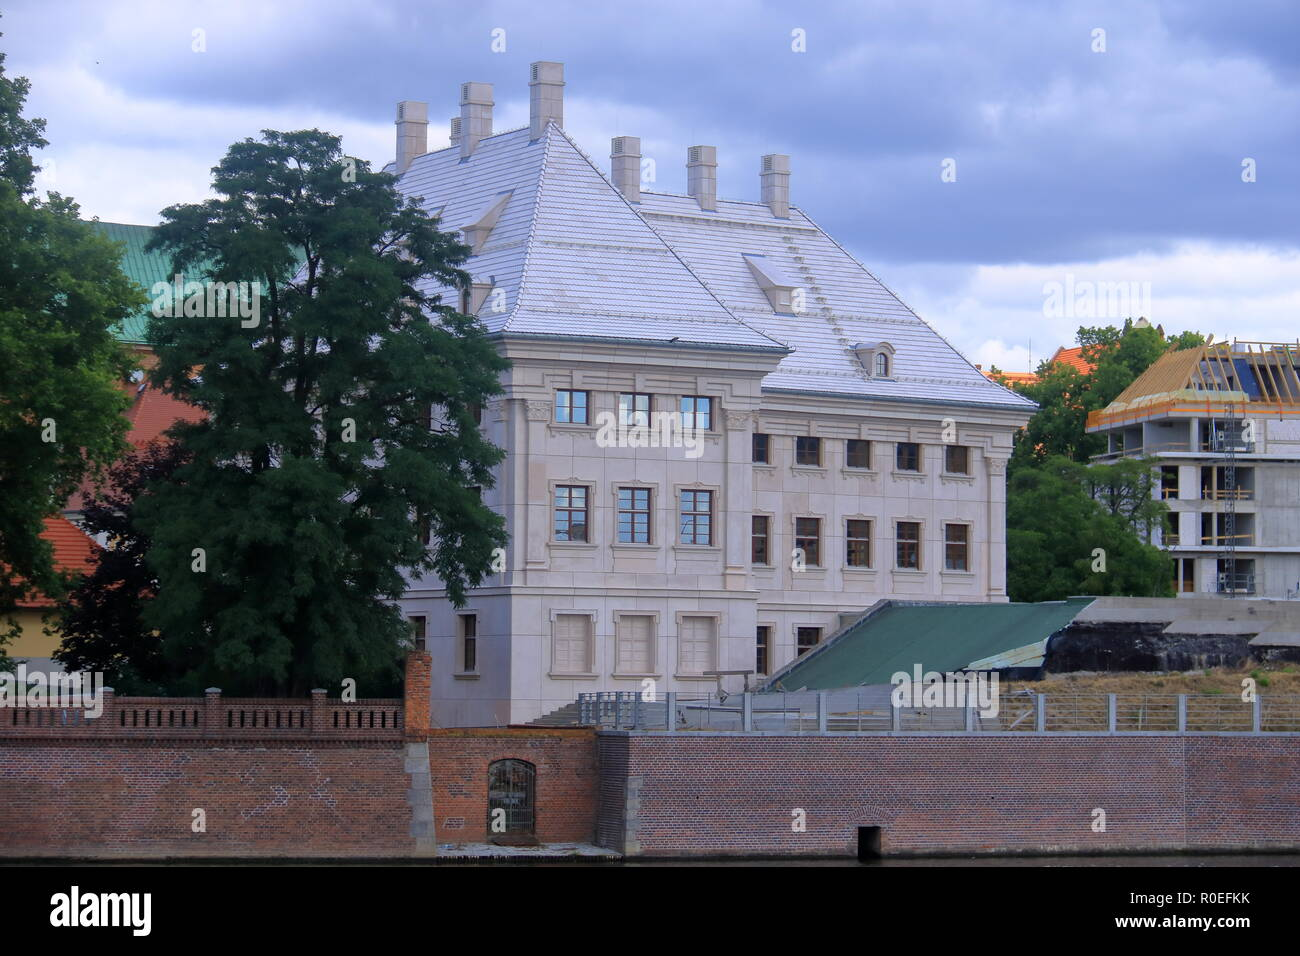 The beautiful City of Wroclaw in Poland Stock Photo